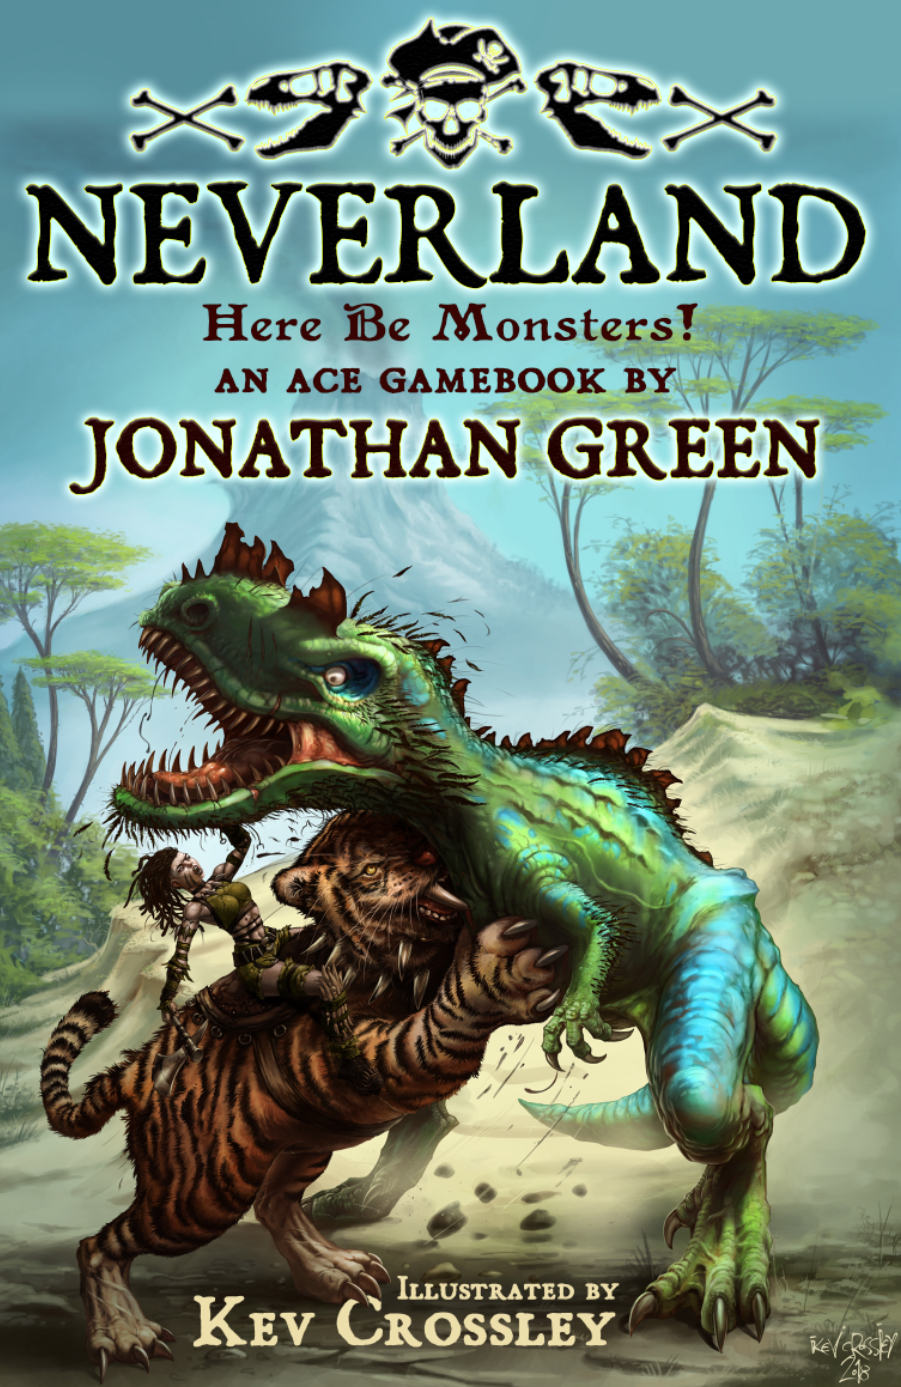 NEVERLAND - Here Be Monsters!